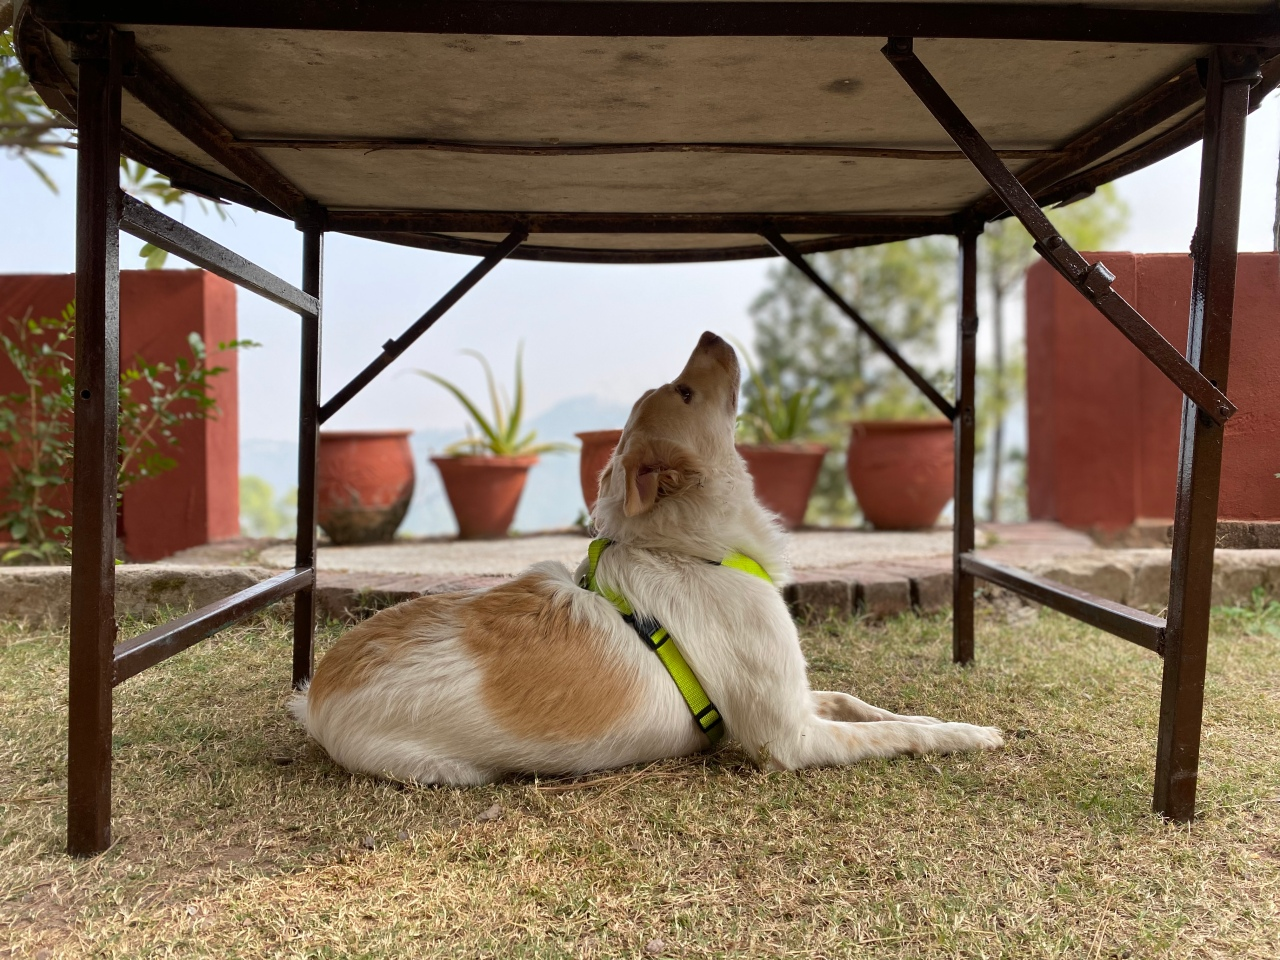 Road-Tripping with Pet inIndia